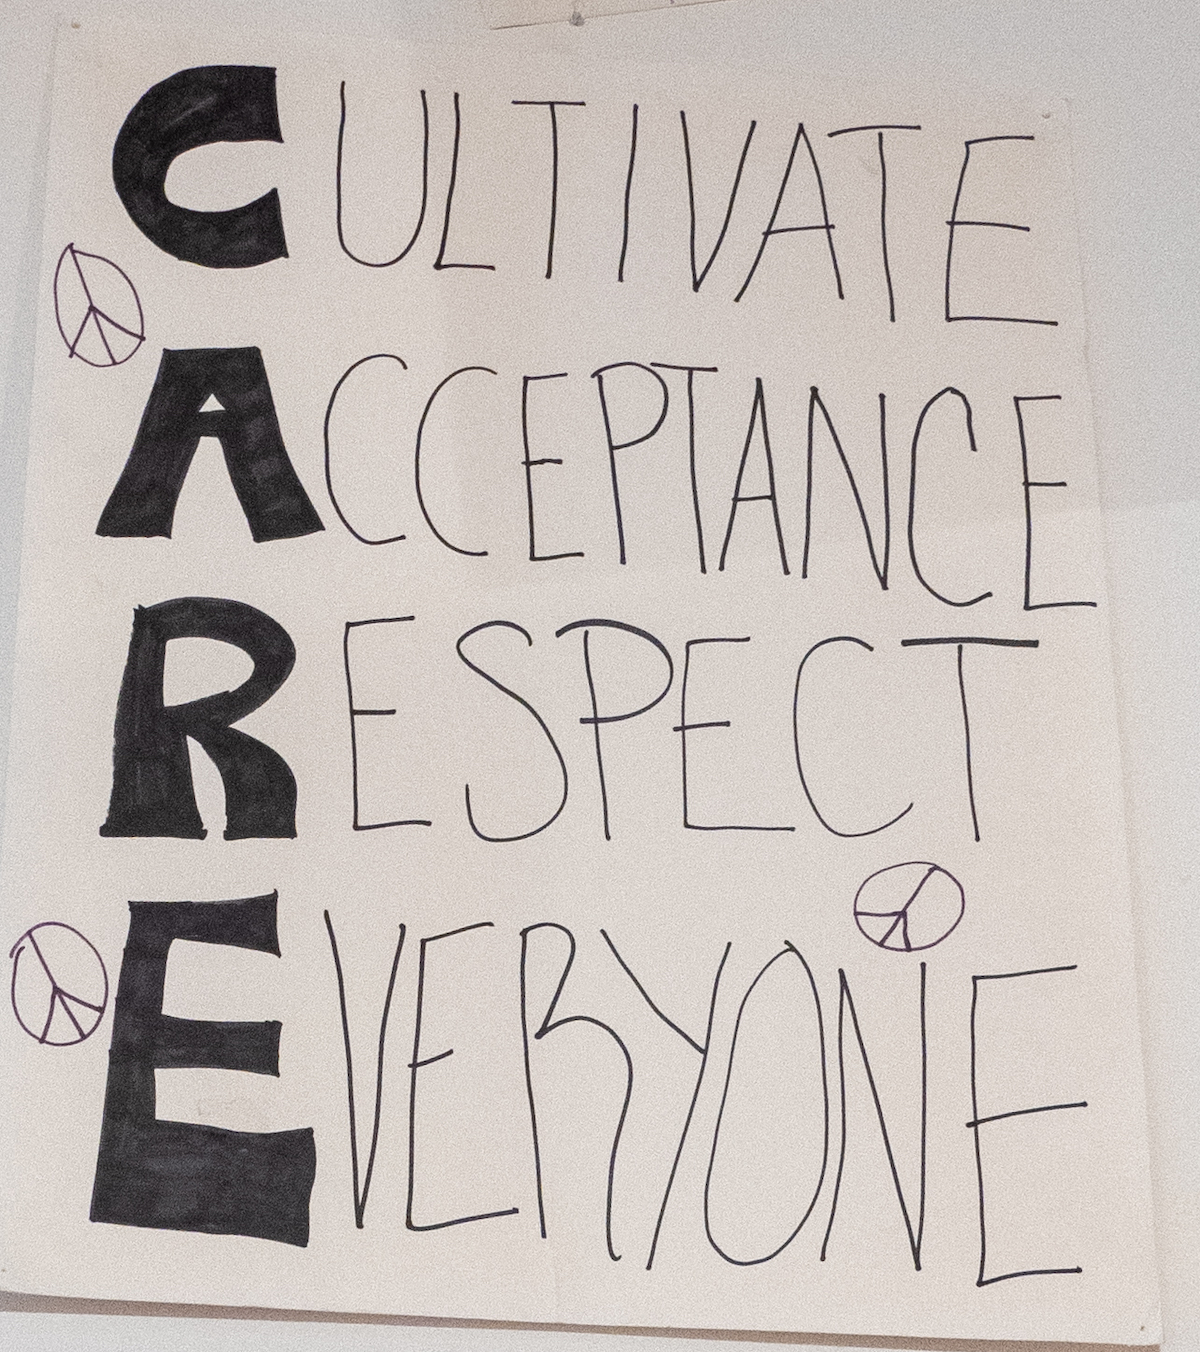 Cultivate Acceptance Respect Everyone